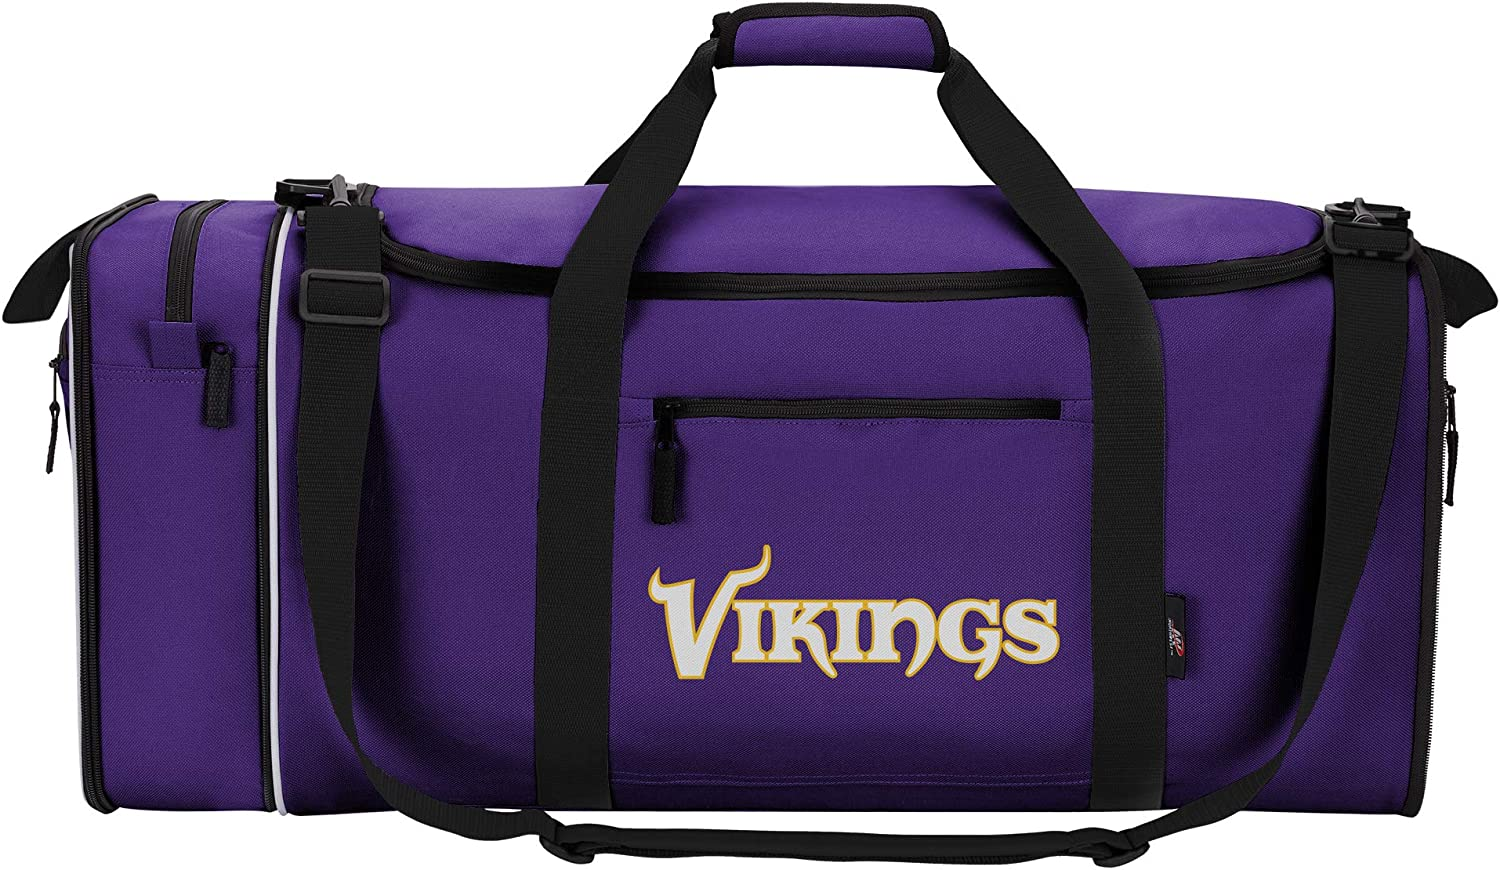 """Officially Licensed NFL Steal Duffel Bag, Multi Color, 28"""" x 11"""" x 12"""""""